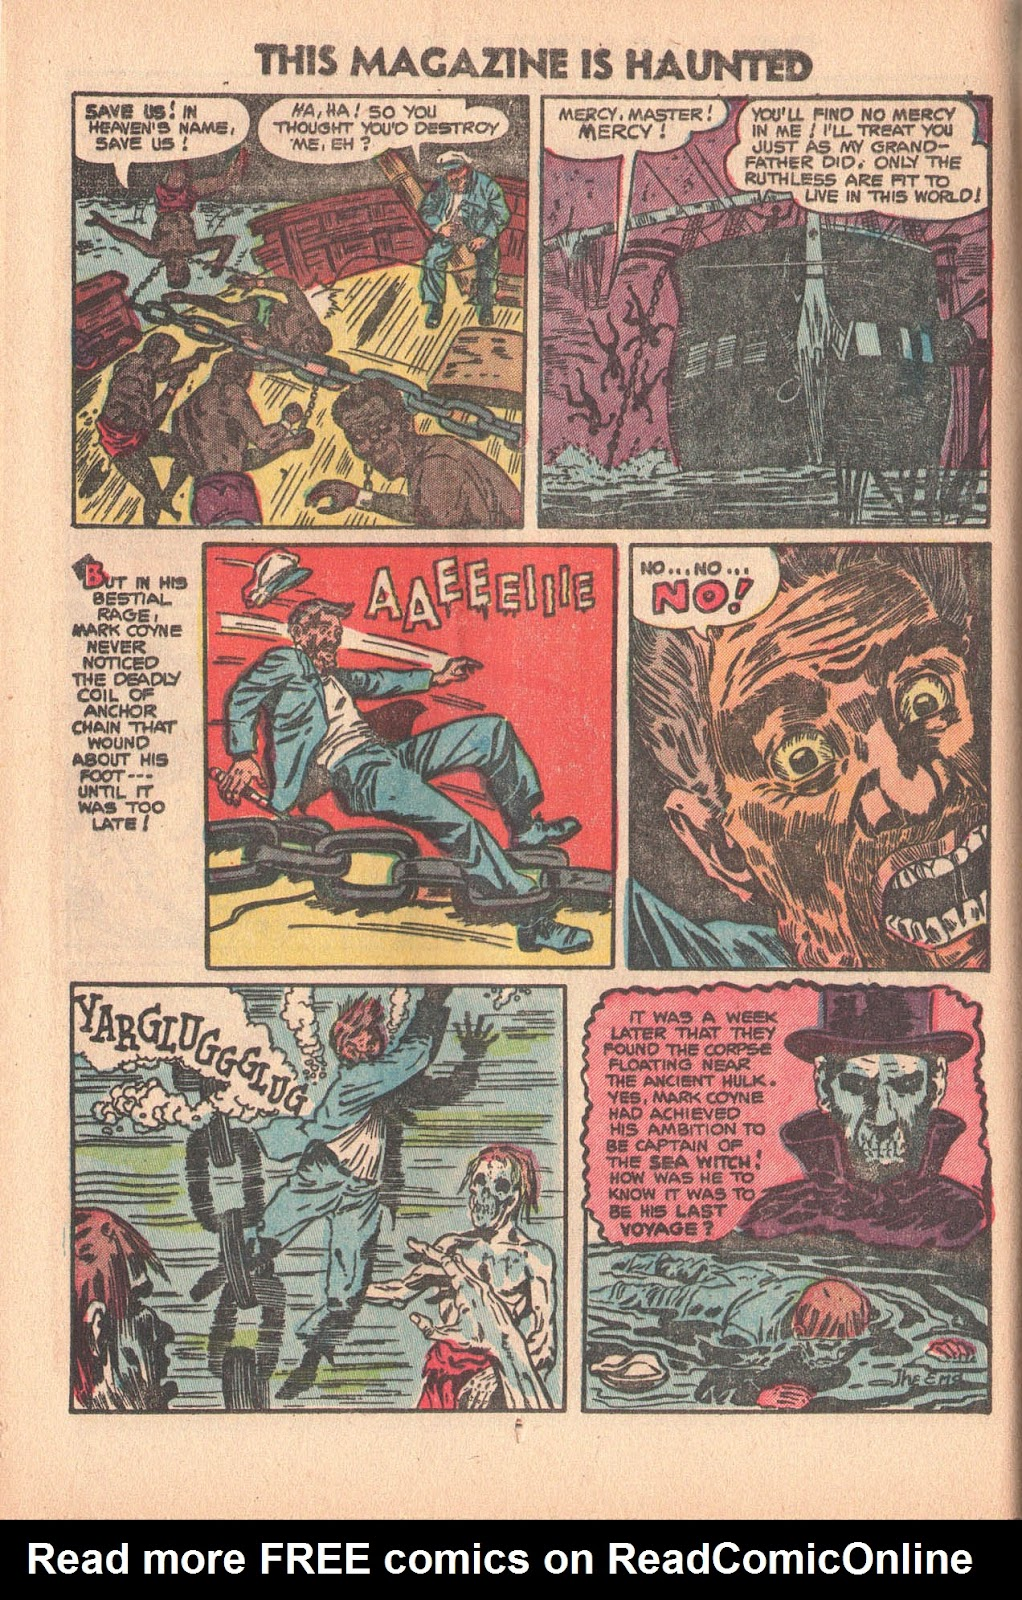 Read online This Magazine Is Haunted comic -  Issue #16 - 12